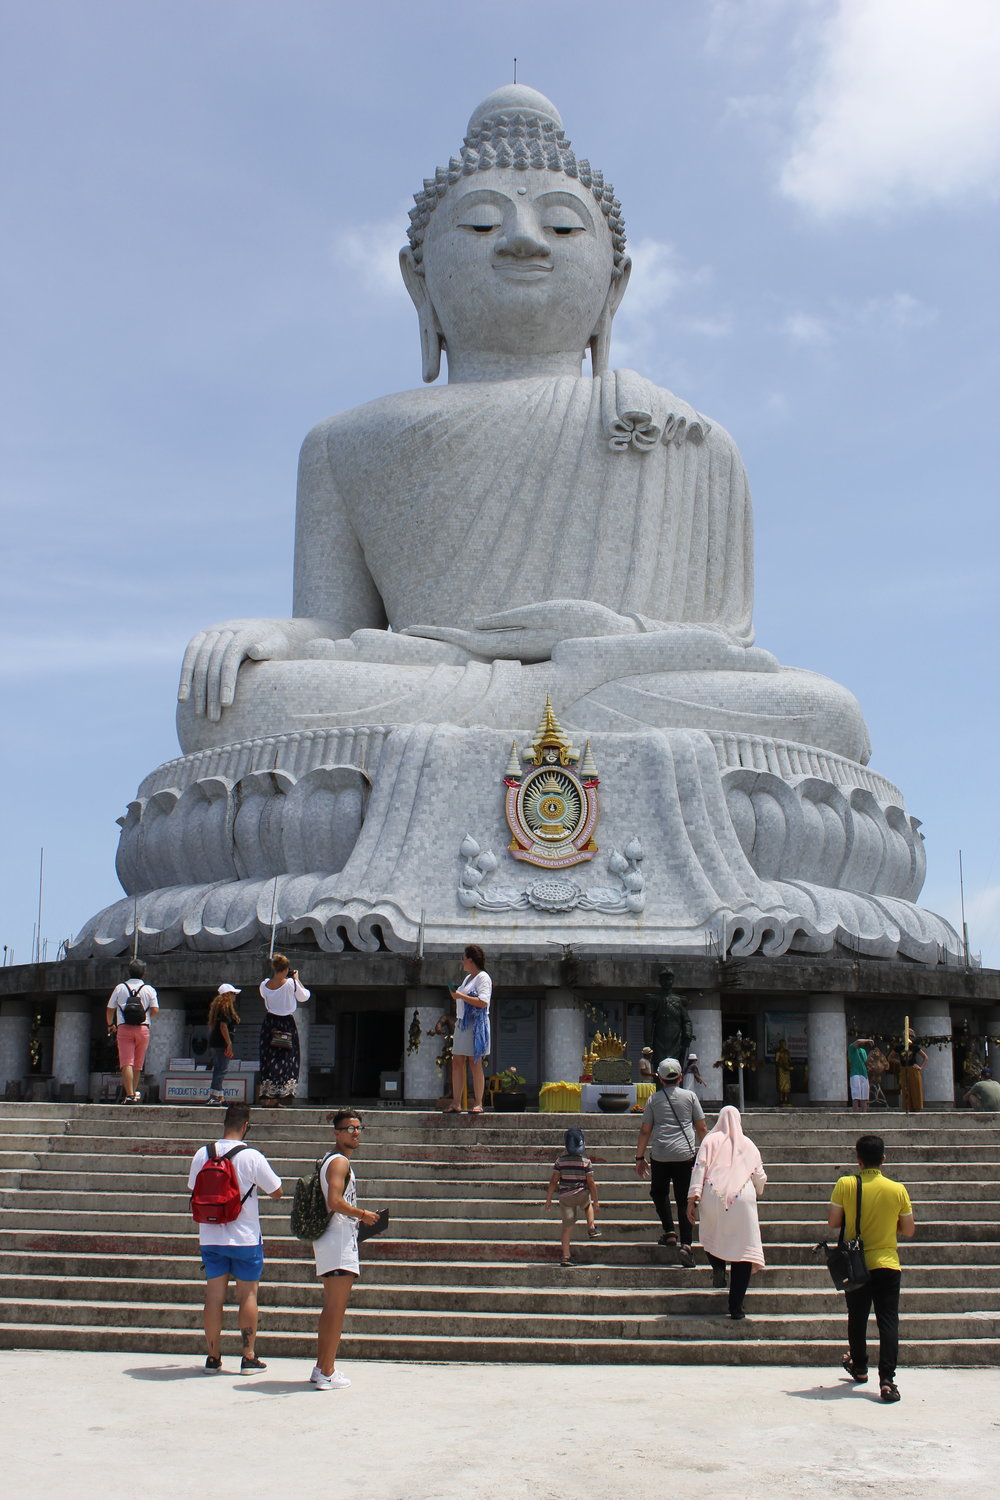 The Big Buddha looking out serenely from a mountaintop on Phuket Island